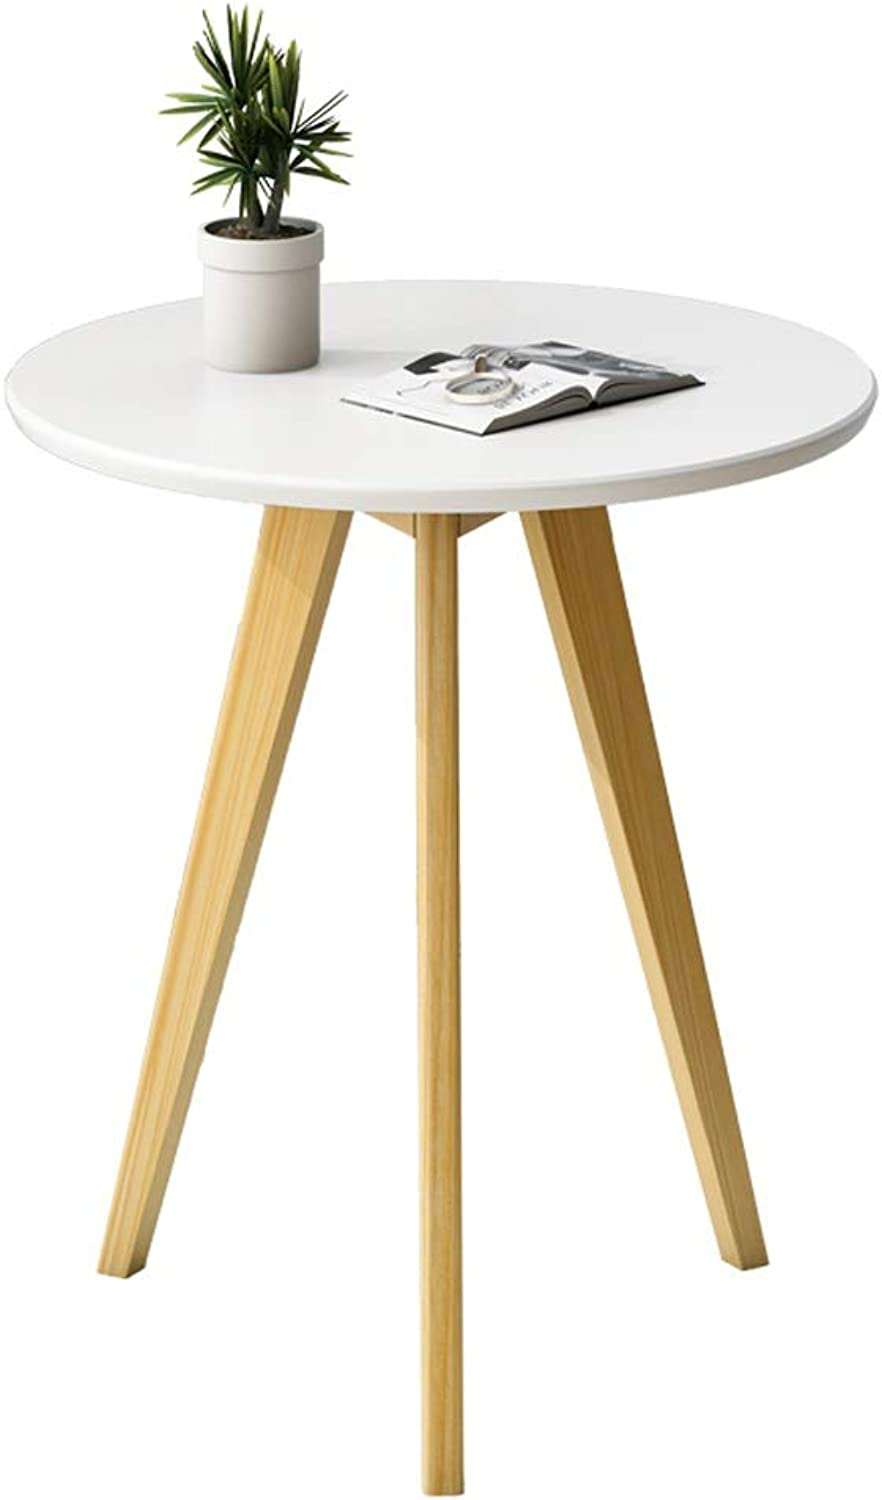 Nordic Coffee Table Simple Living Room Sofa Table Small Apartment Balcony Side Table Bedroom Creative Bedside Table Economical Small Table == (color   White, Size   50x60cm)